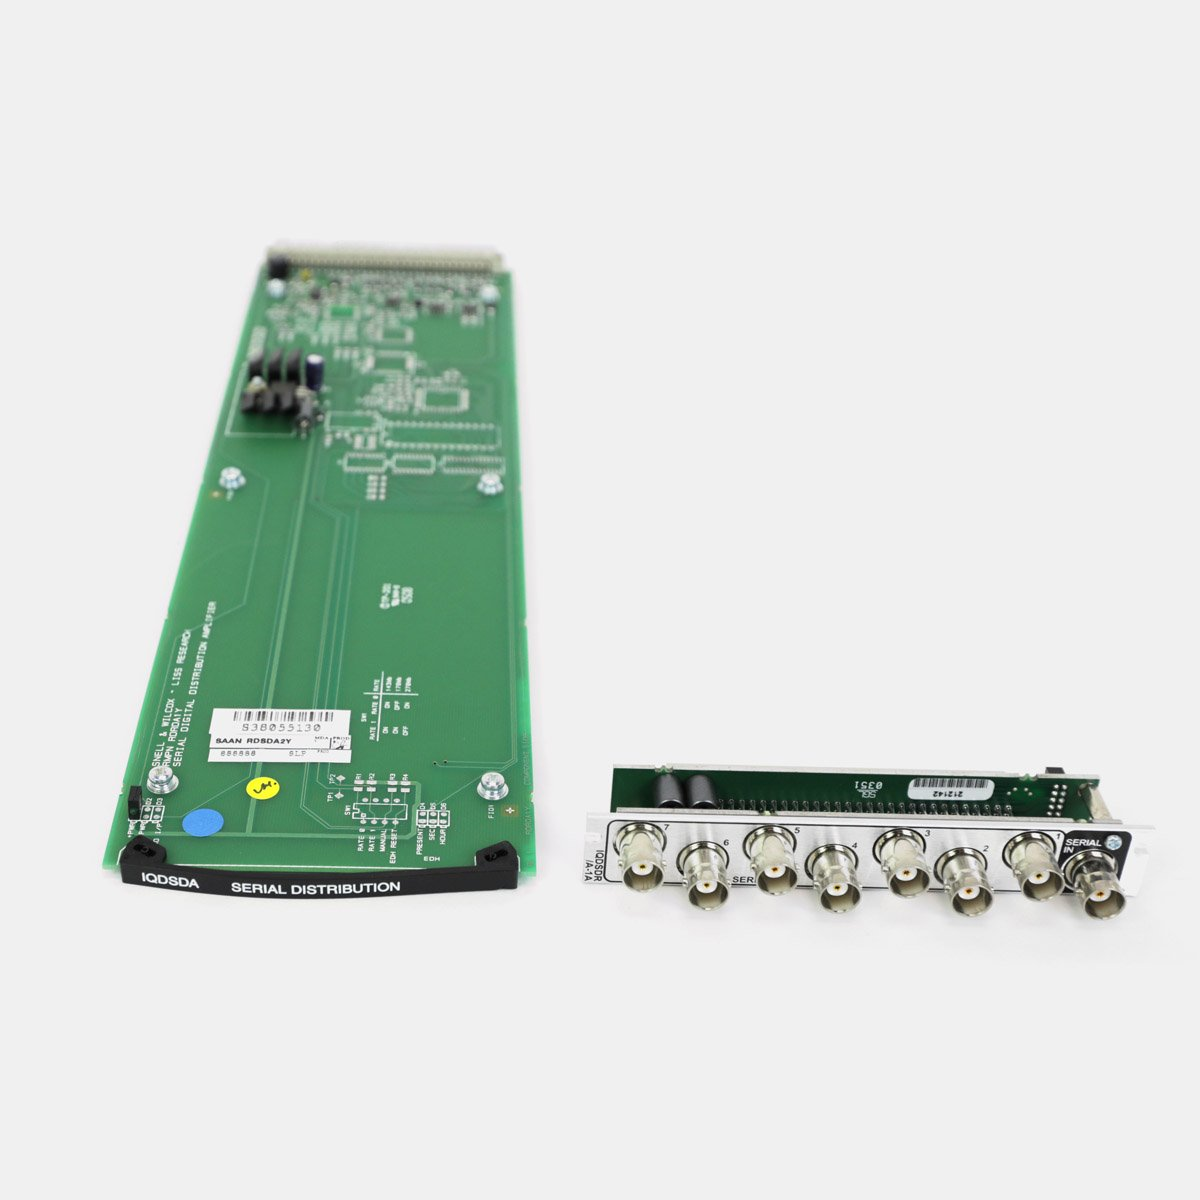 Used Snell IQDSDA SDI Distribution Amplifier Card